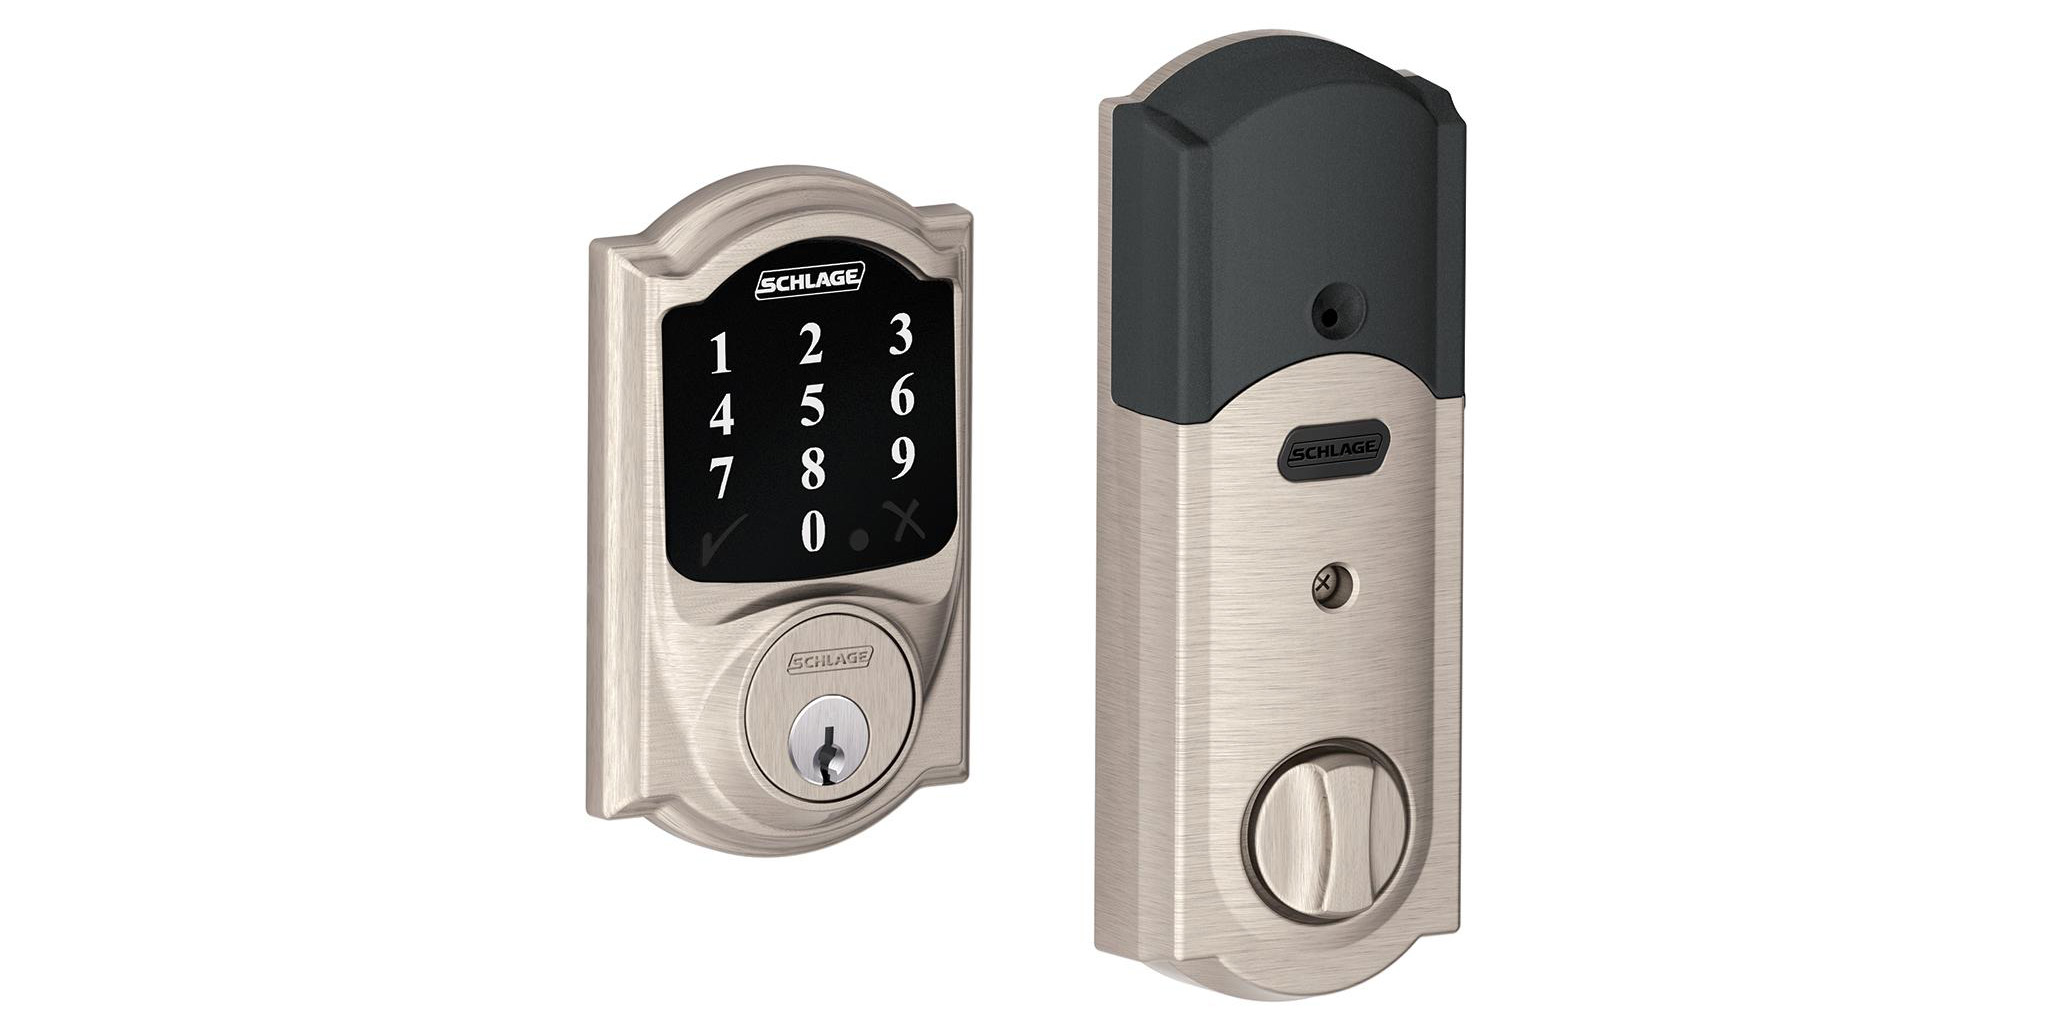 Schlage's Connect Touchscreen Deadbolt brings tech to your front door for $118.50